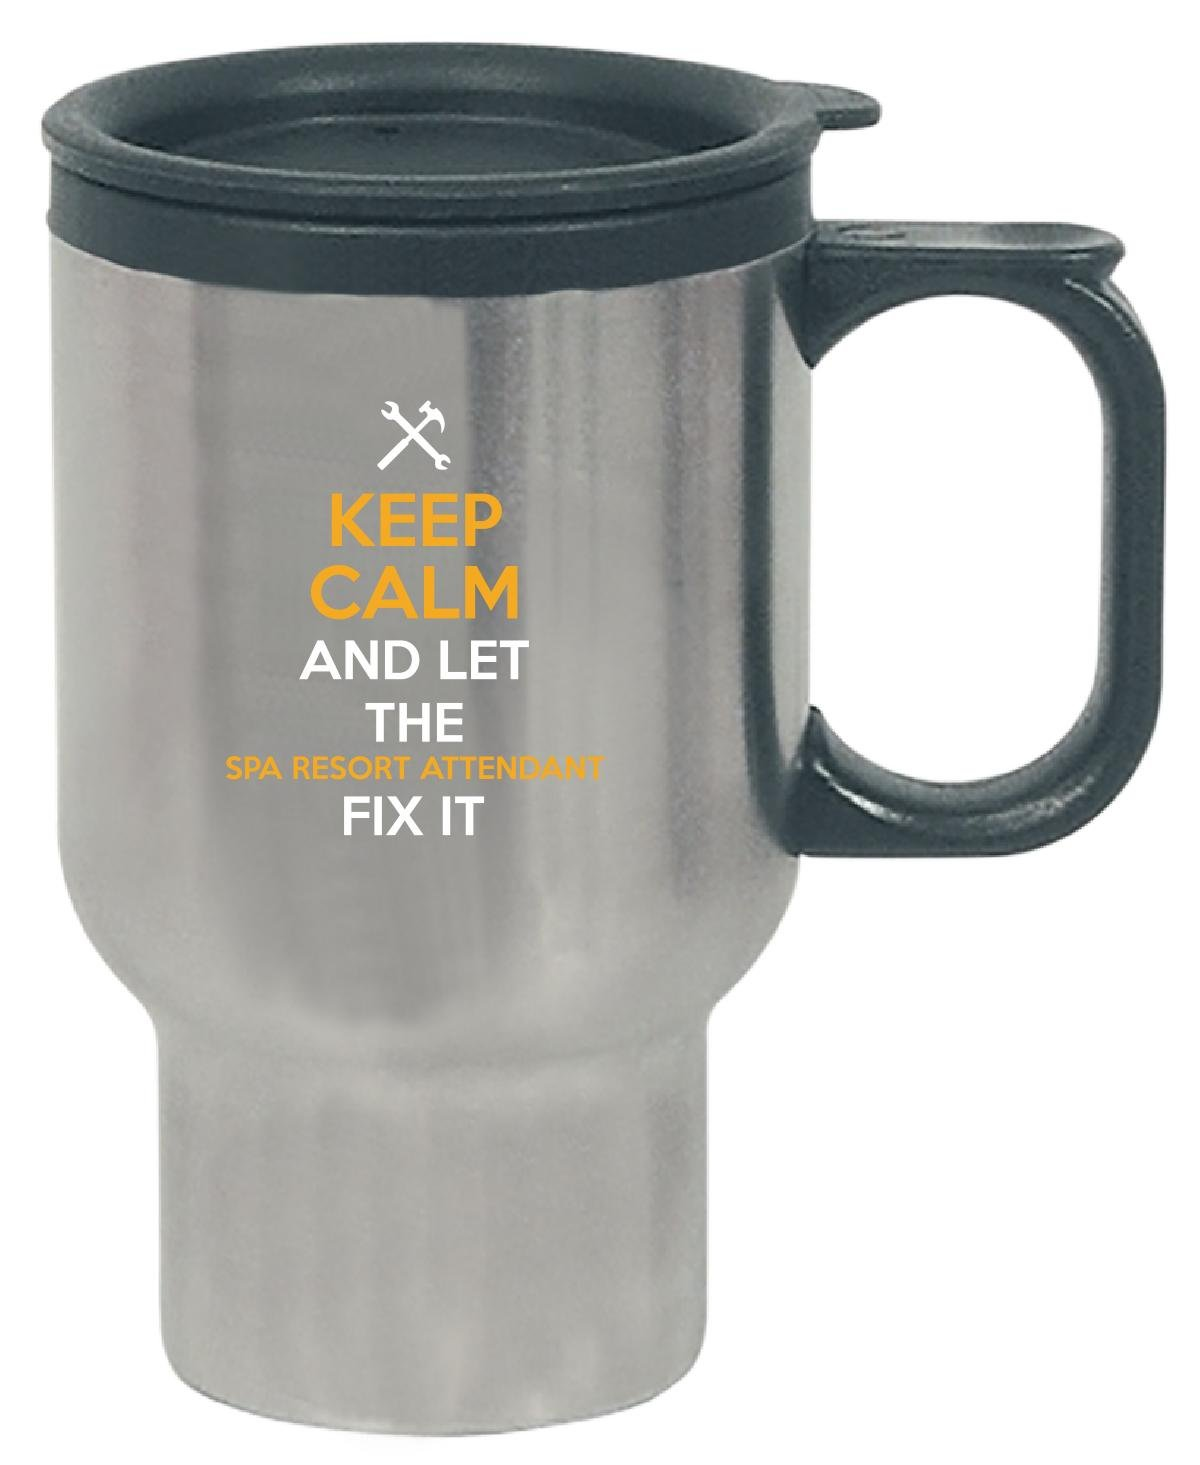 Keep Calm And Let The Spa Resort Attendant Fix It - Travel Mug